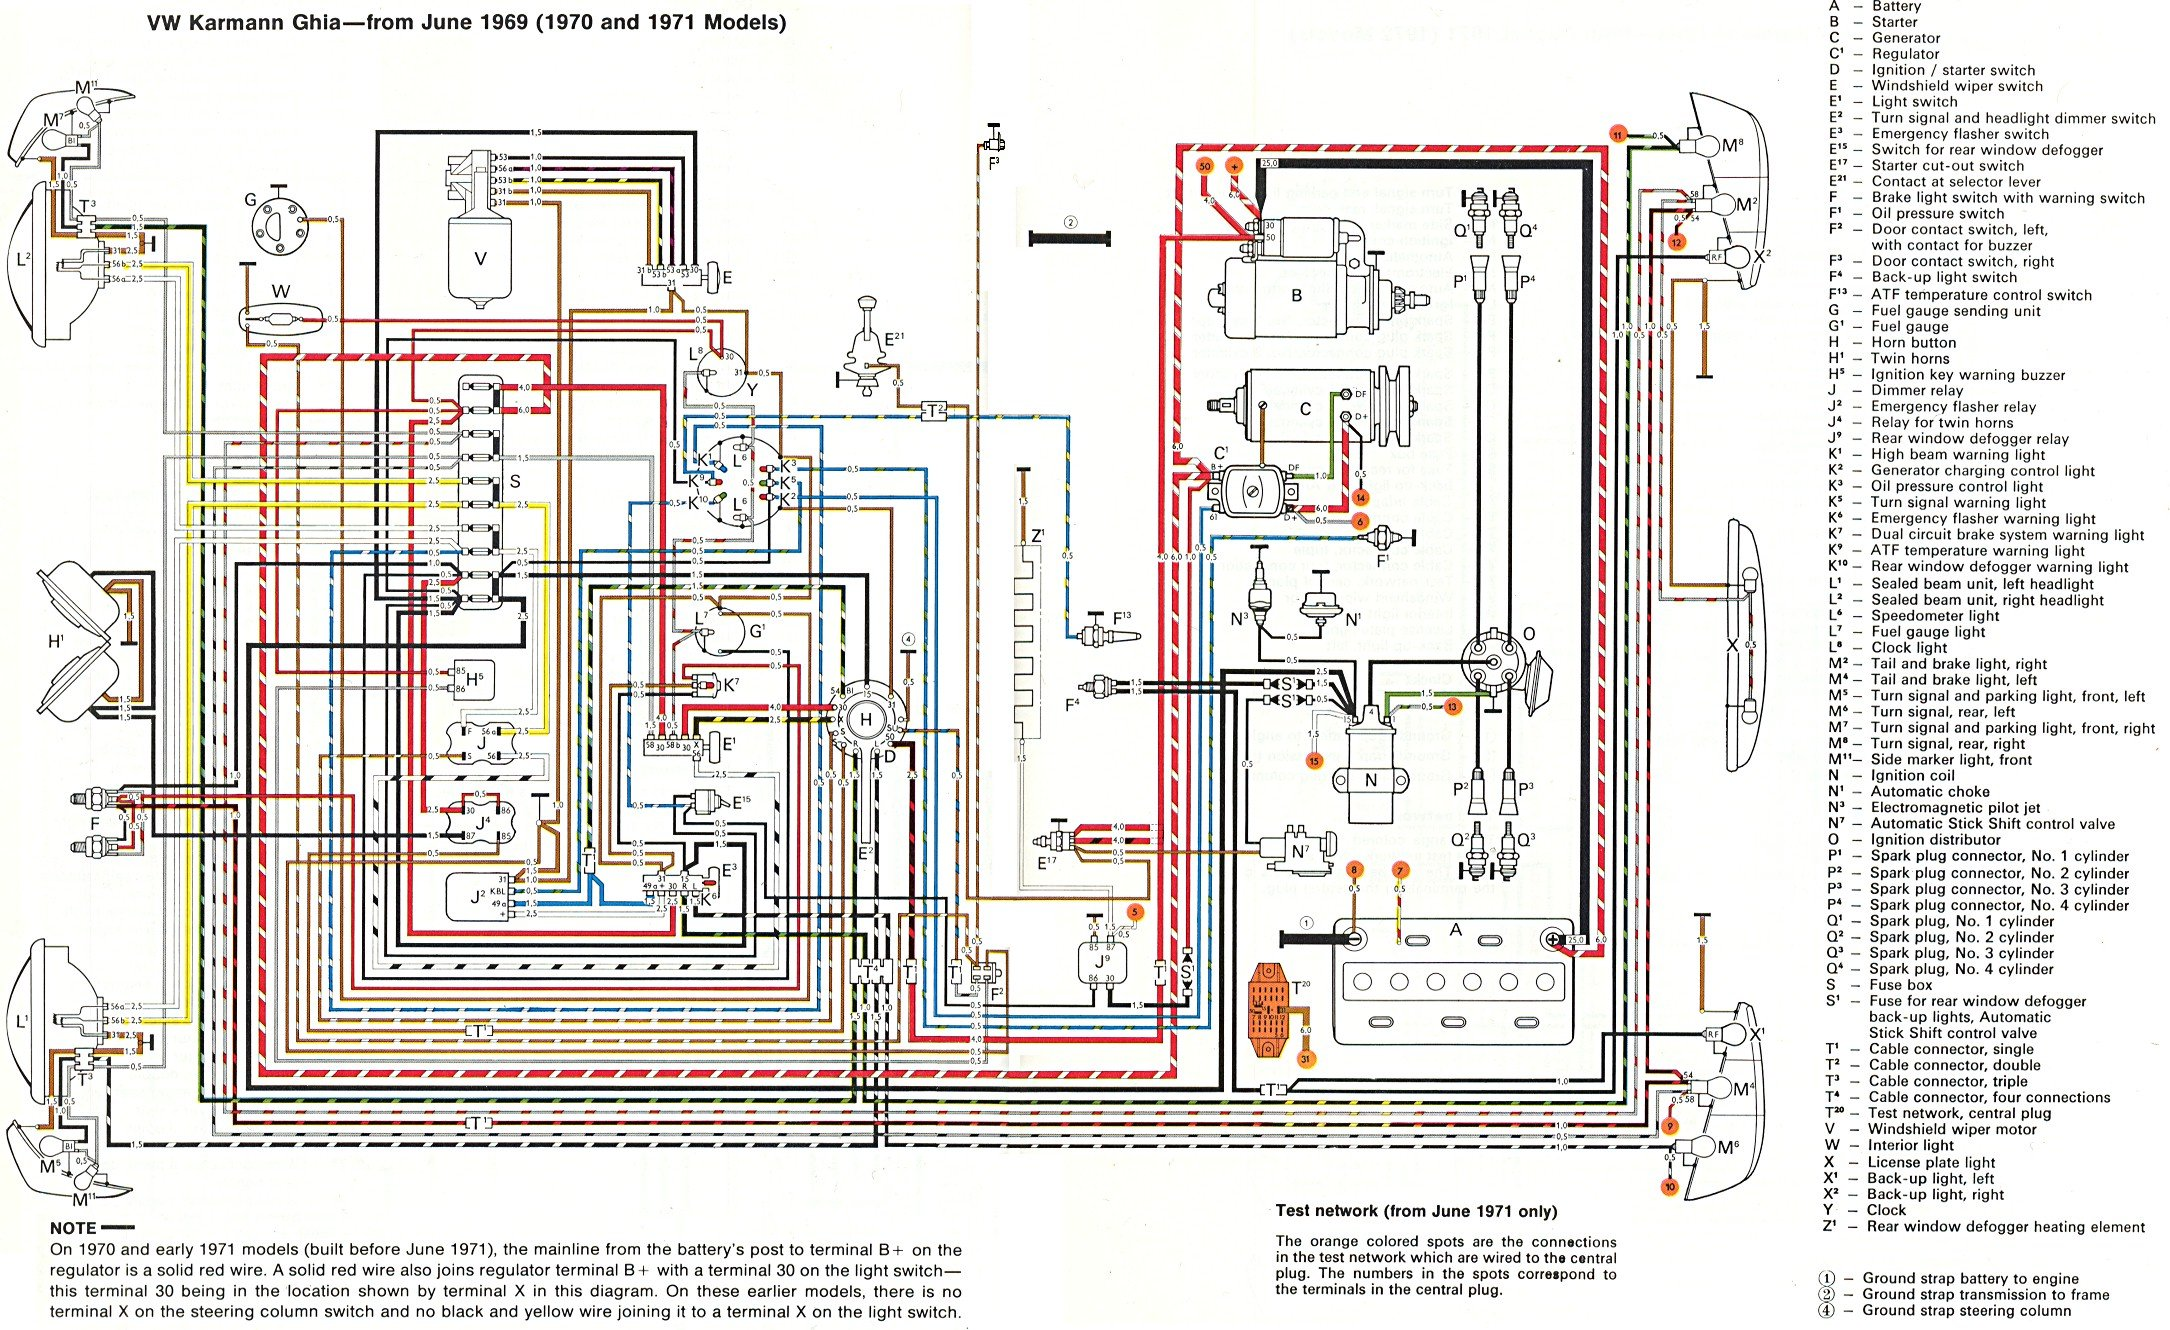 wiring diagram 1968 karmann ghia data wiring schema rh site de joueurs com  1970 vw beetle